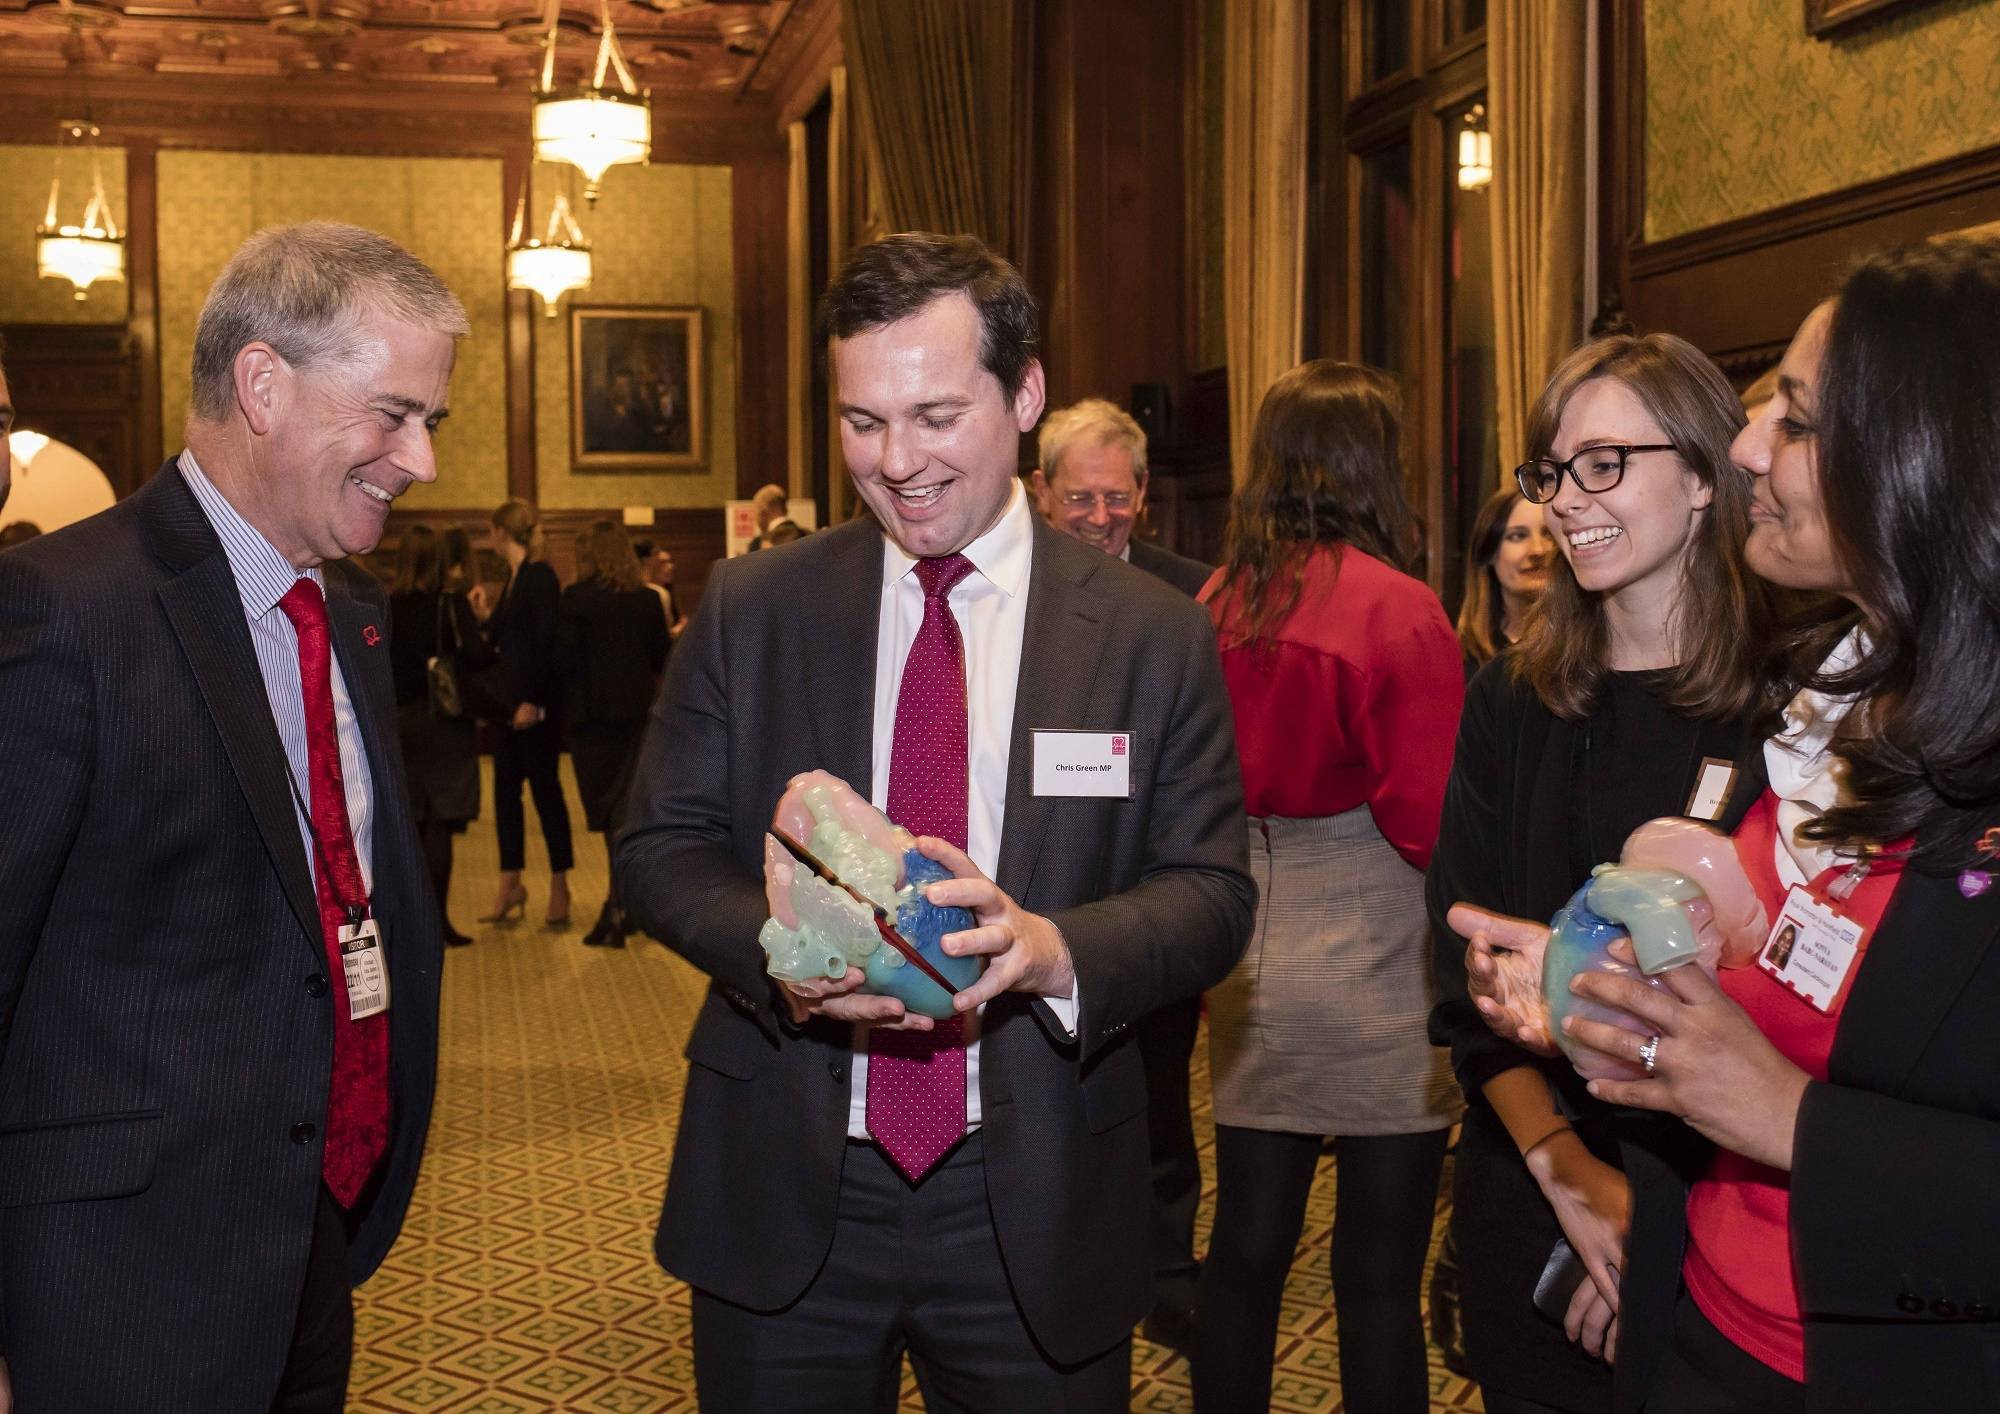 Chris Green MP with a 3D-printed heart at a reception for the British Heart Foundation